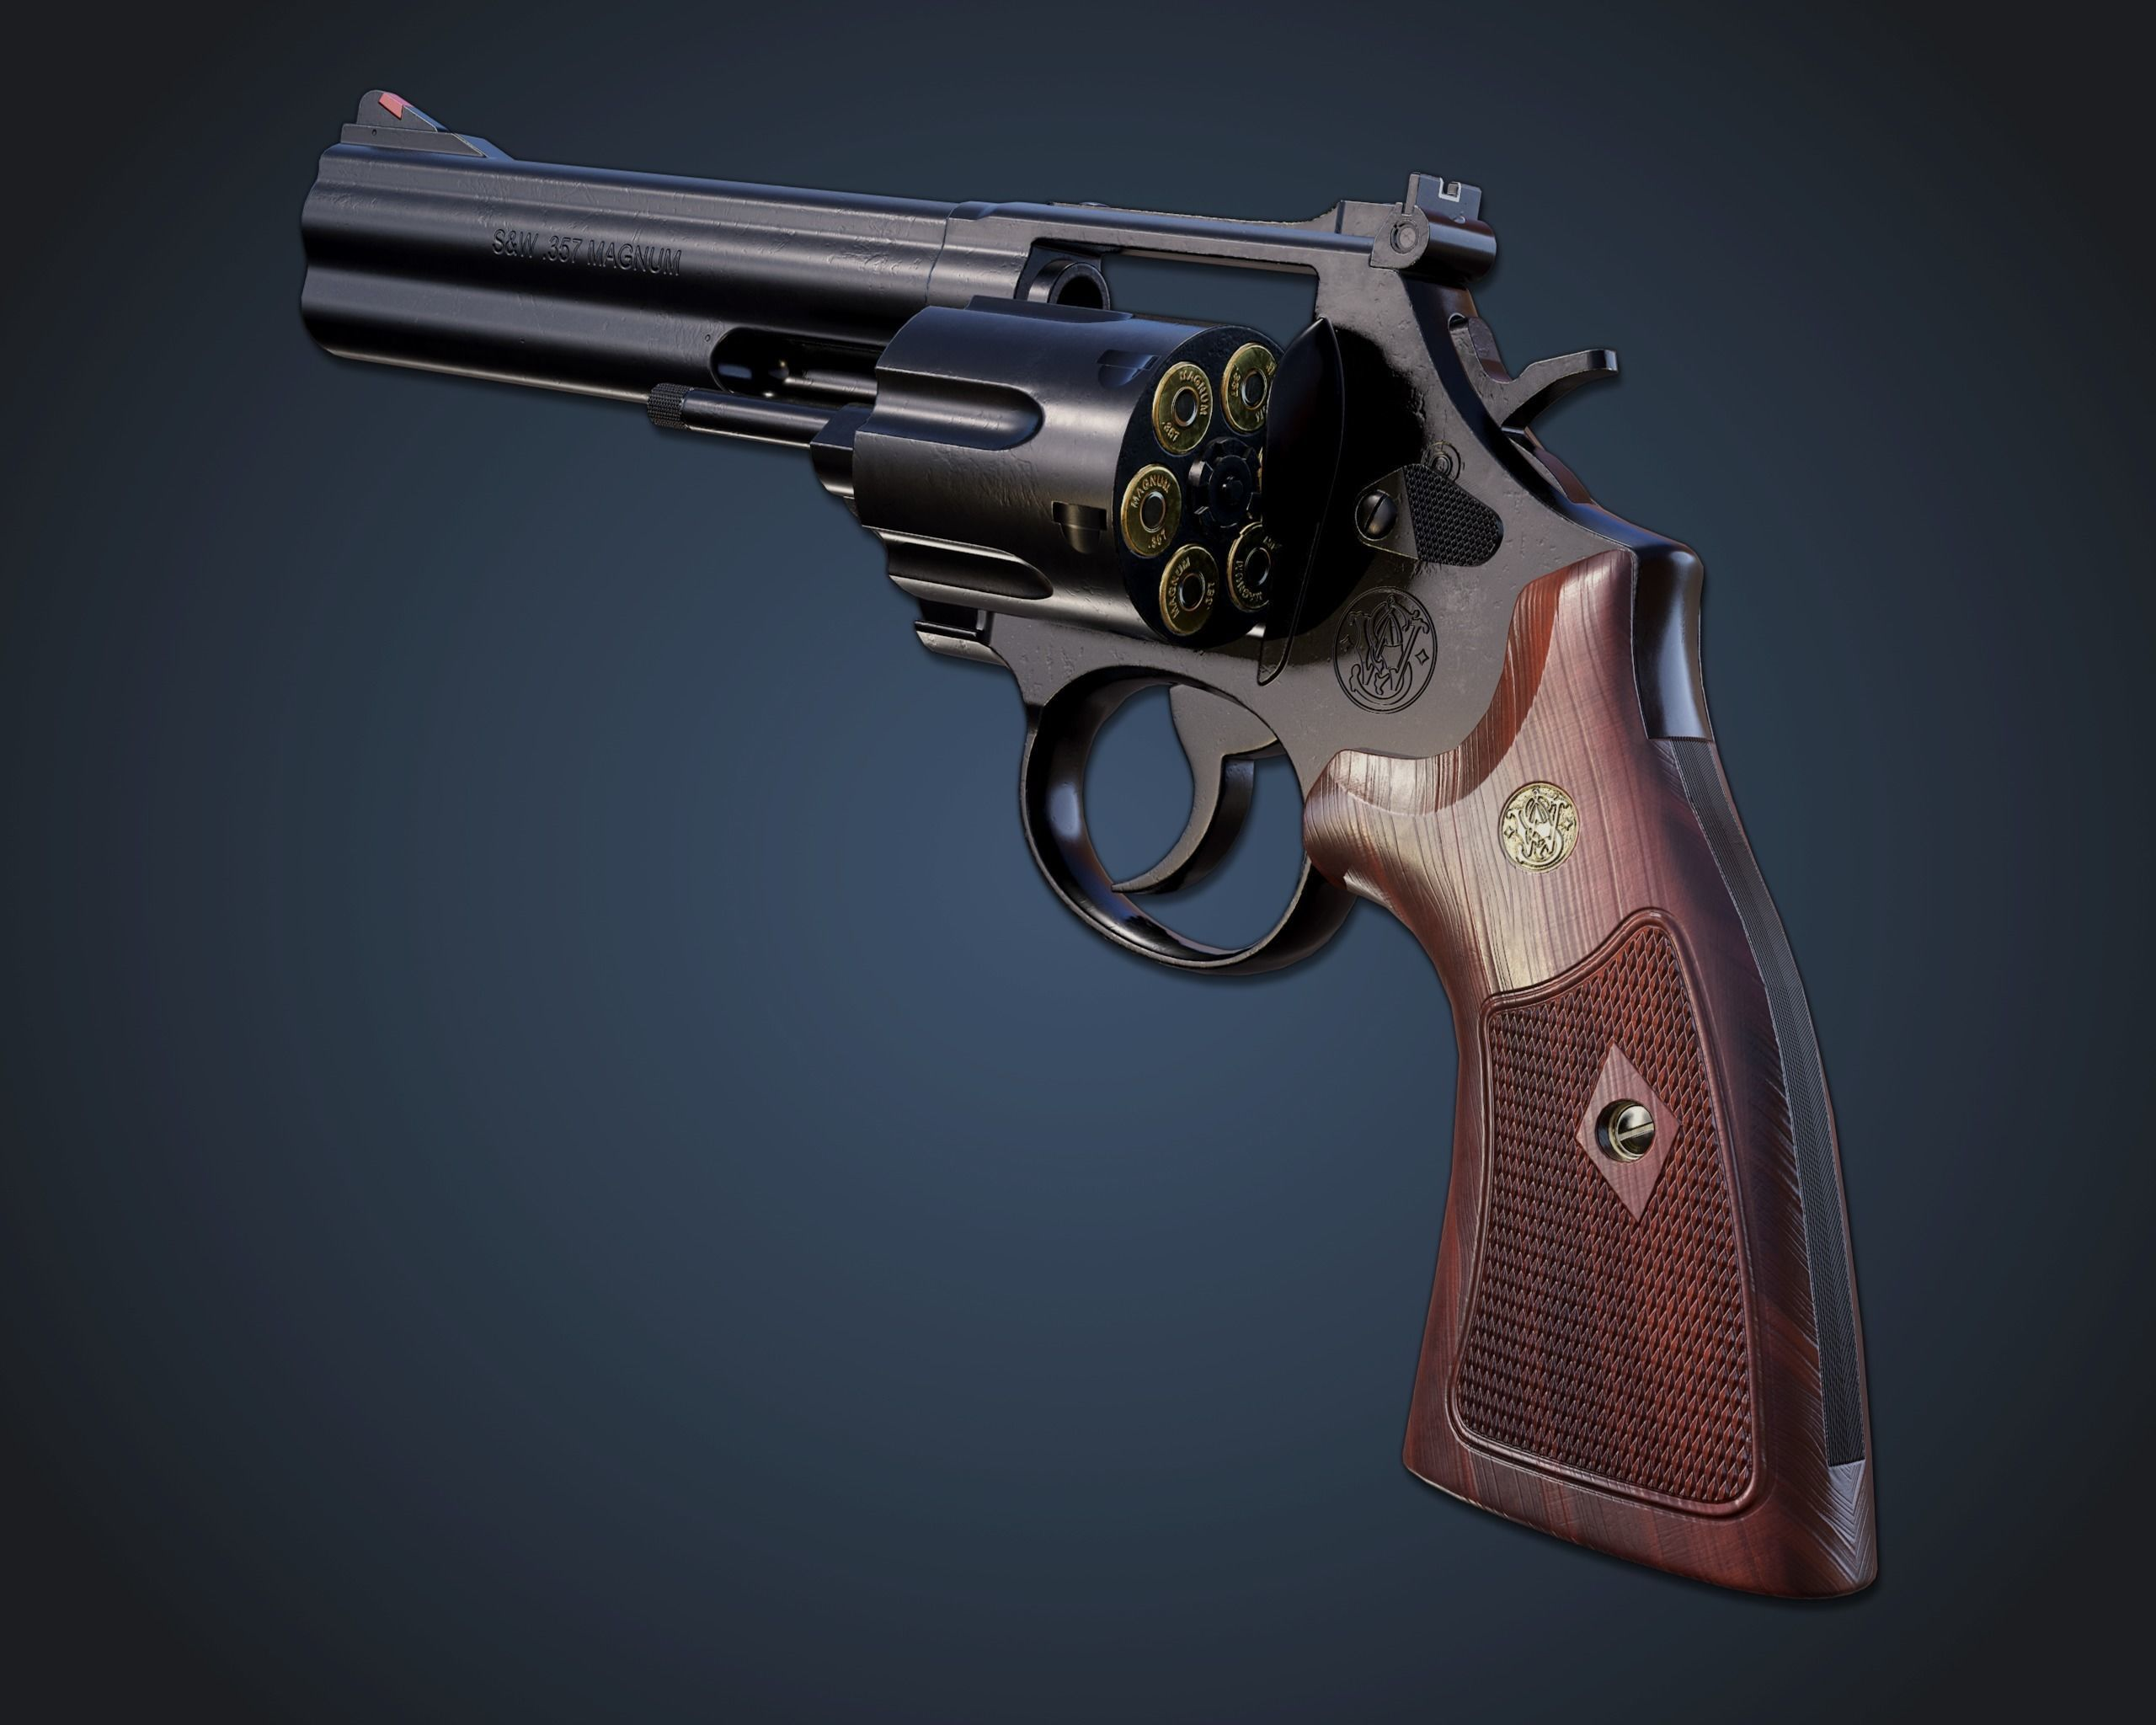 Smith and wesson 586